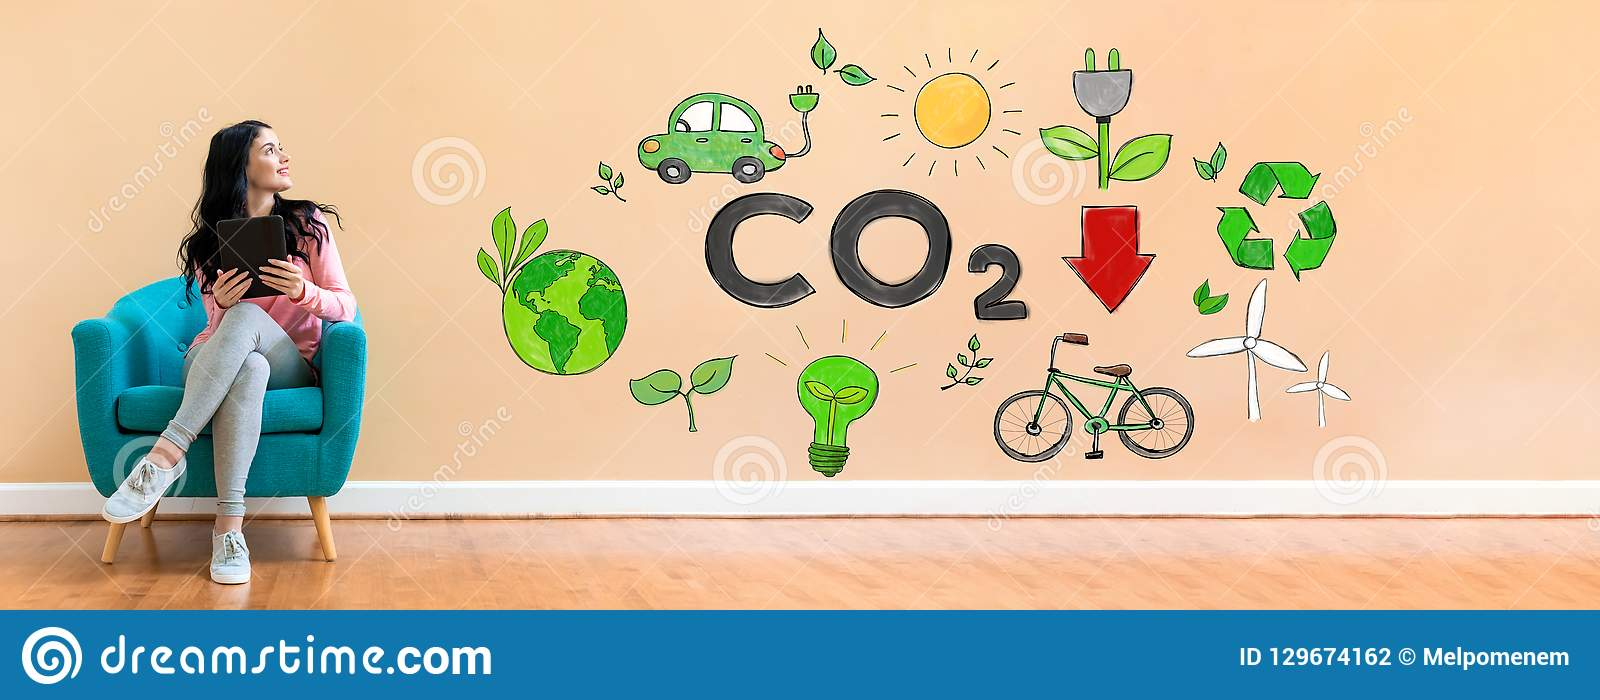 Reduce CO2 concept with woman using a tablet